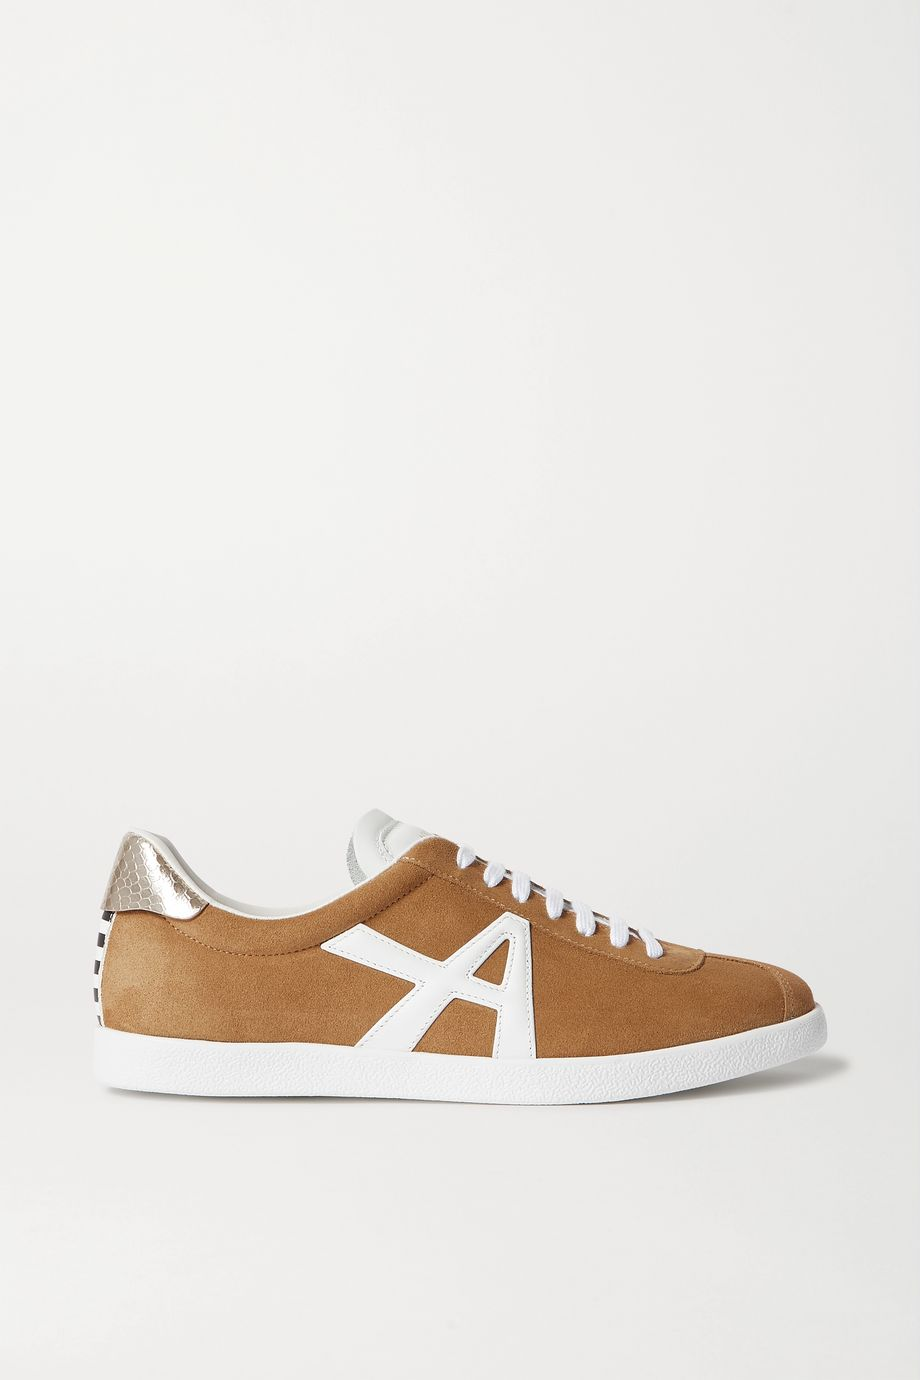 Aquazzura The A leather-trimmed suede sneakers